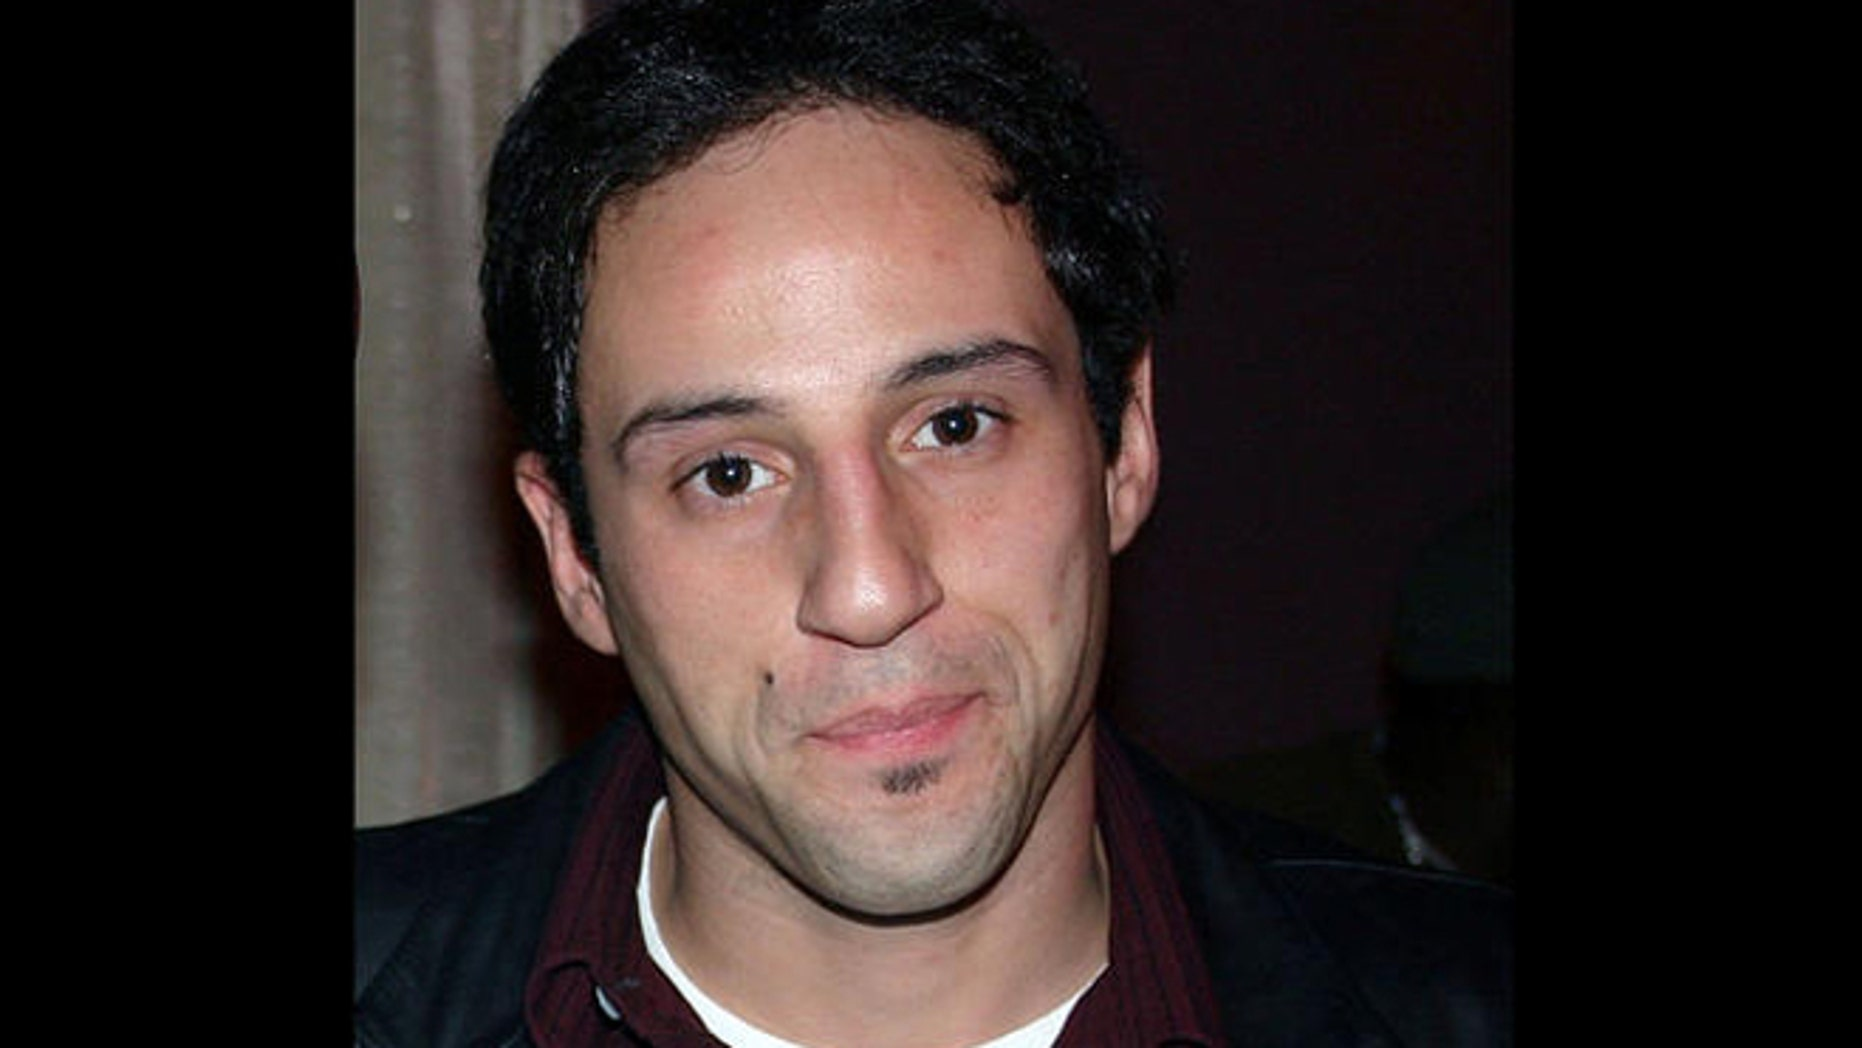 """An off-duty police officer was killed Saturday in a gunfight with two burglars outside his home, Saturday Dec. 10, 2005. One of the suspects was identified by police as Lillo Brancato Jr., an actor who also appeared in several episodes of """"The Sopranos"""" as Matt Bevilacqua.  Lillo Brancato, Jr.is shown in a Feb. 2005 photo in New York. (AP Photo/David Greene)"""